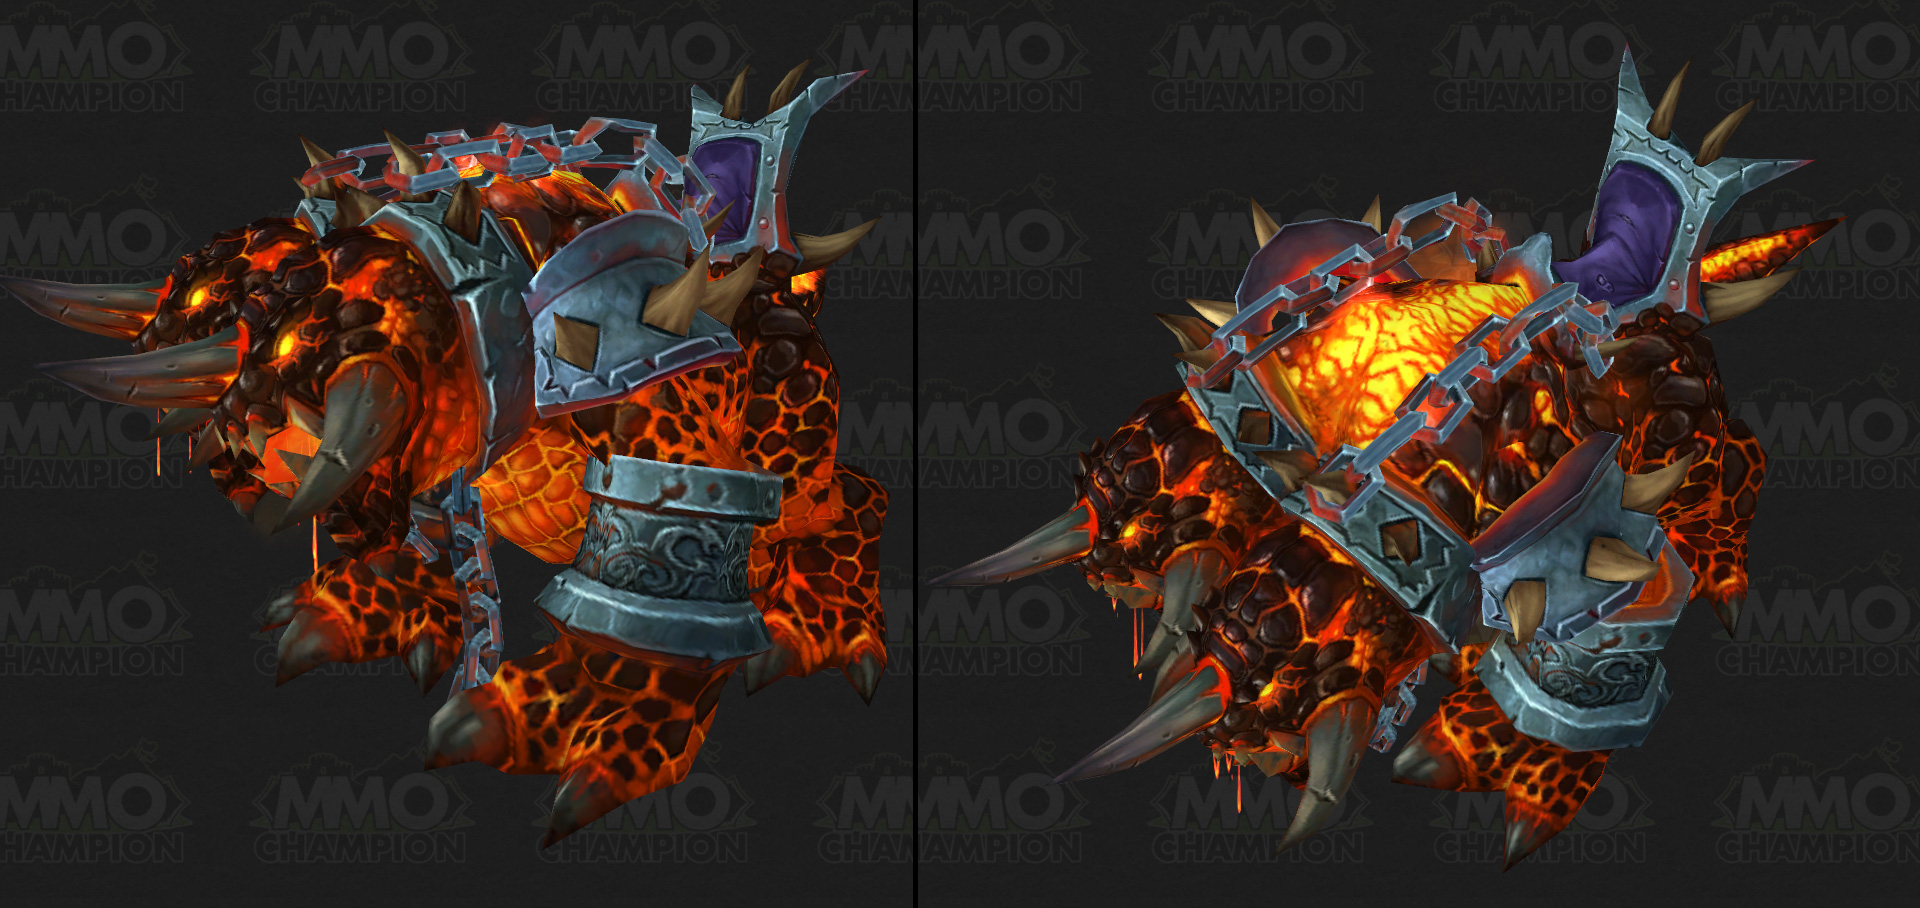 Warlords of Draenor Corehound Mount